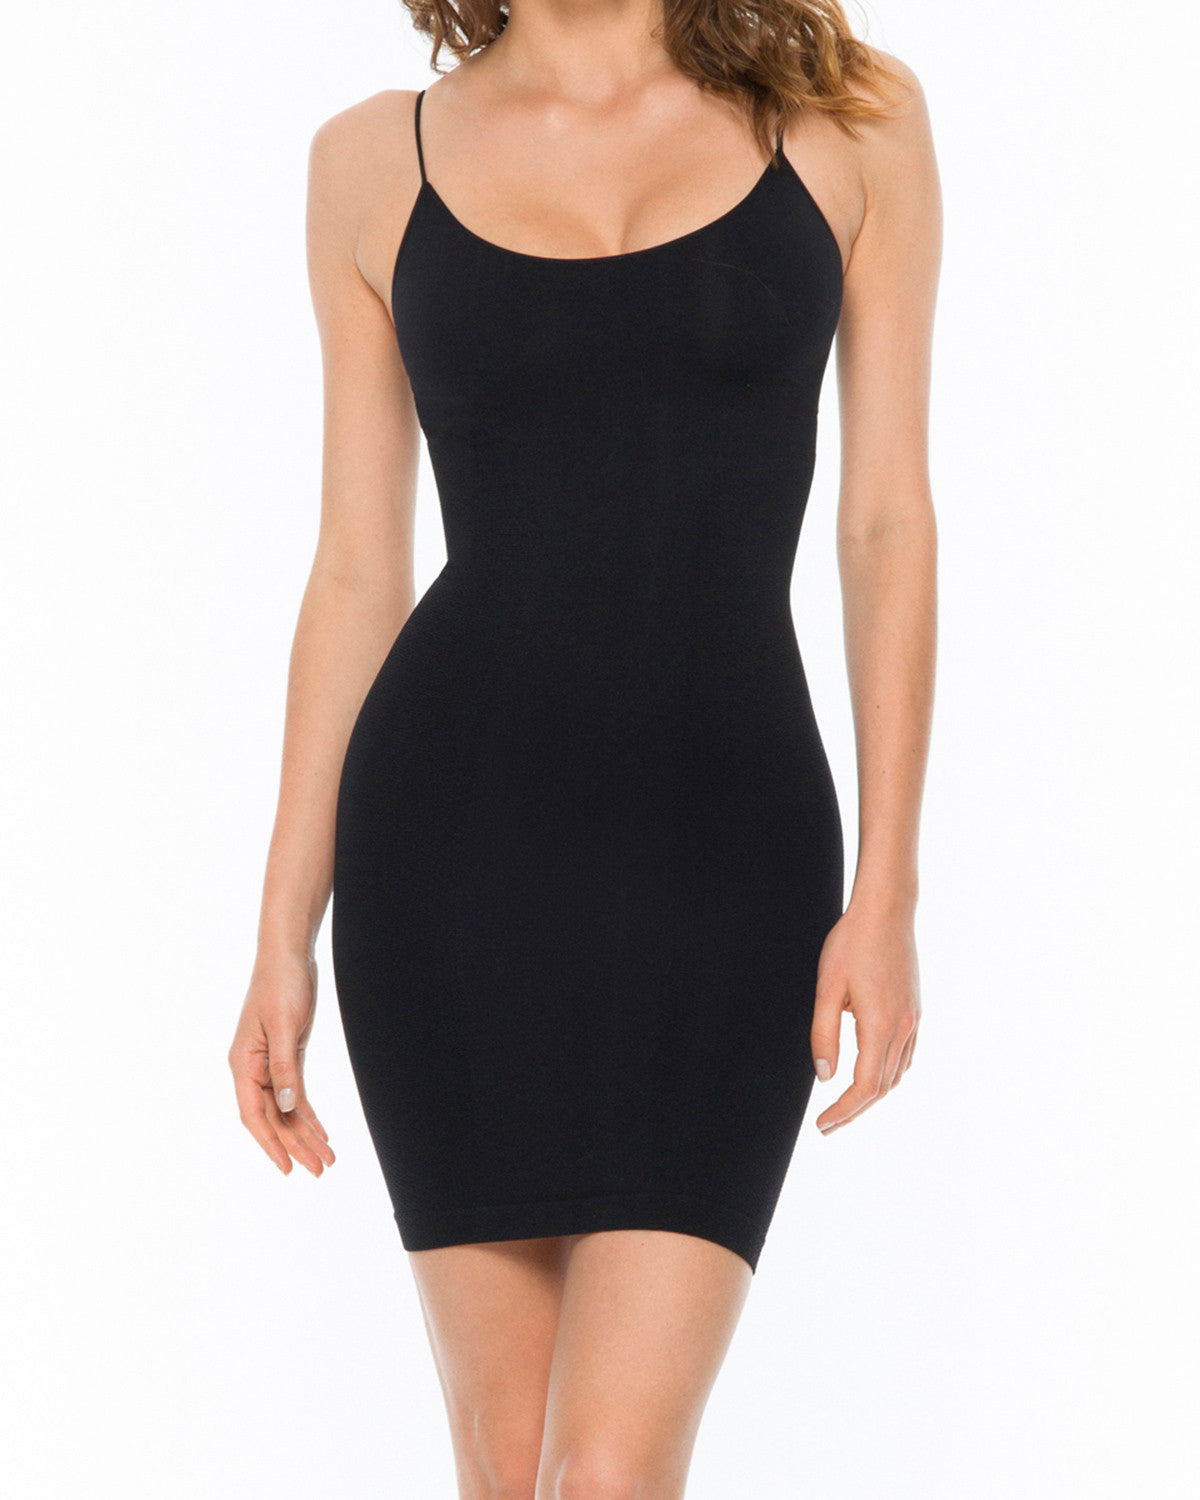 Shaping Cami Dress Slip